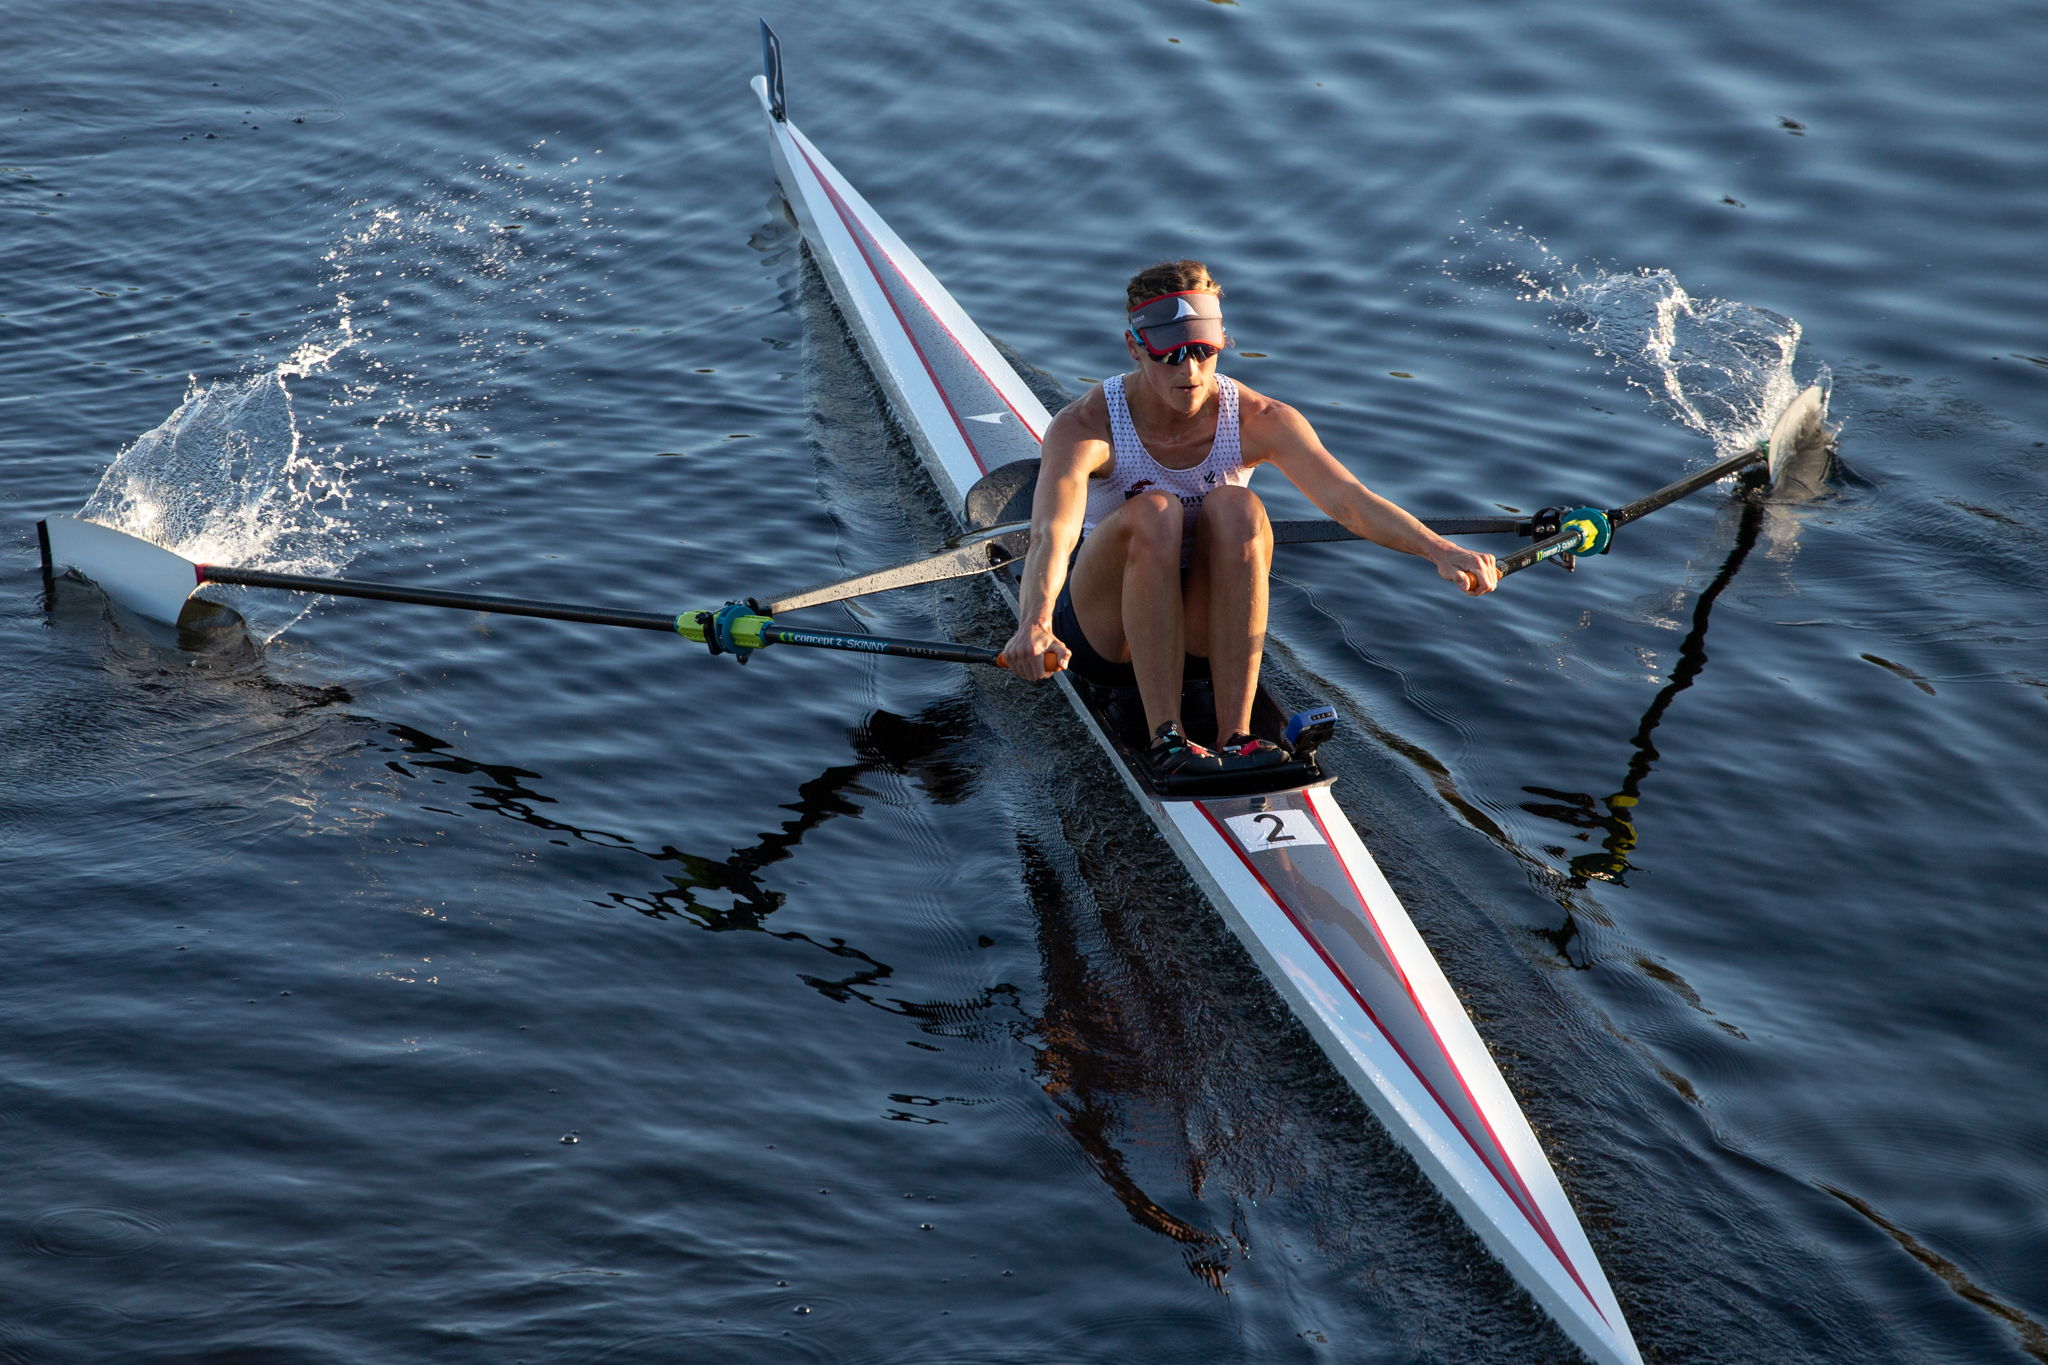 Head Of The Charles Regatta 2019 to Showcase Top Rowing Talent